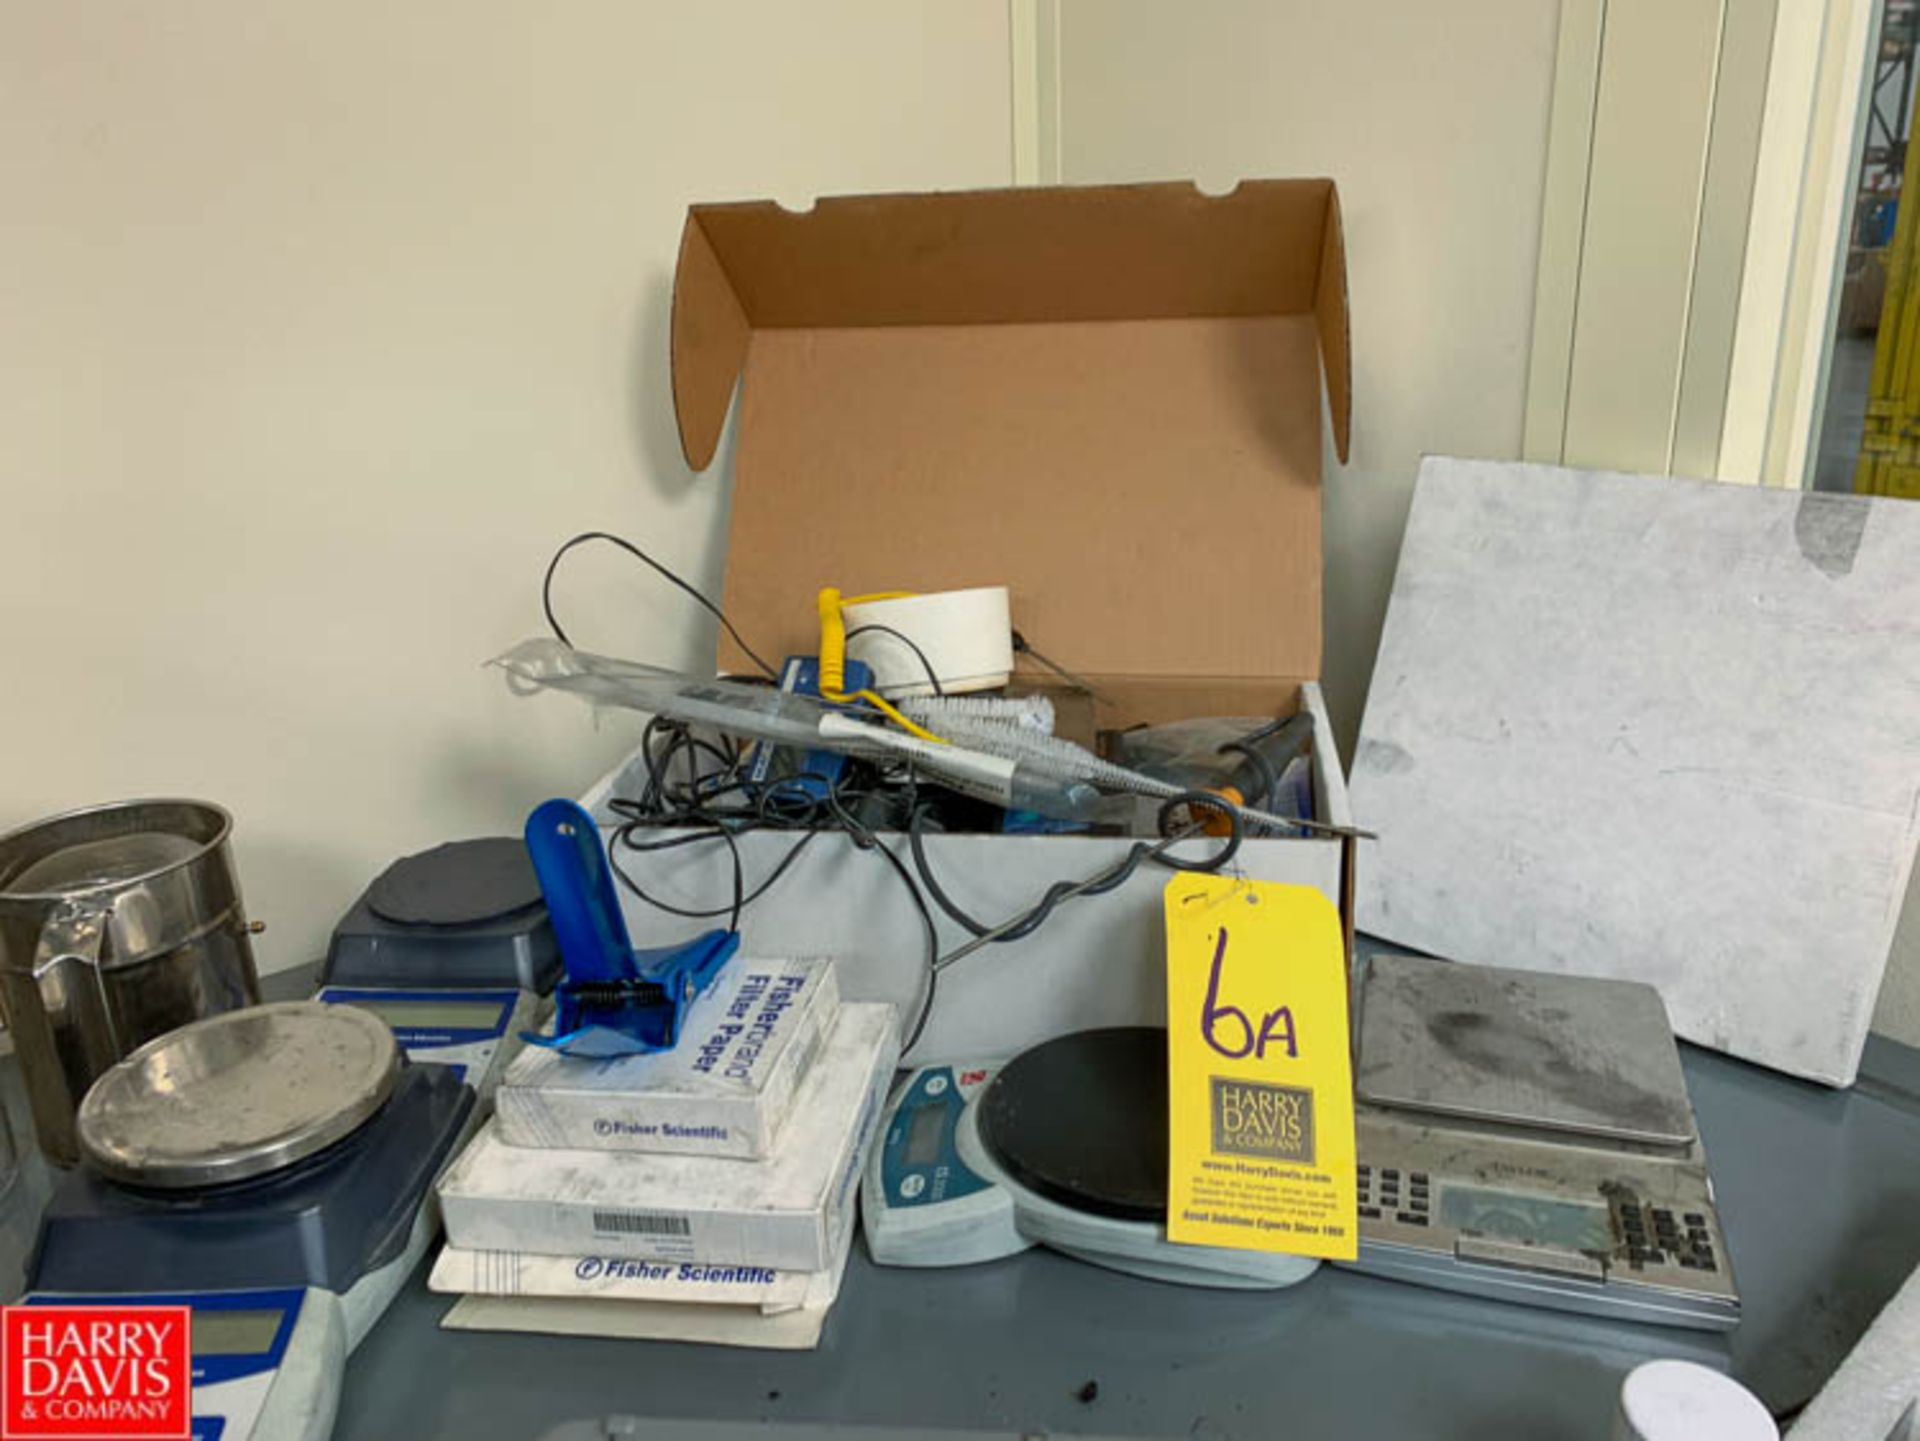 Lot 6a - Assorted Lab Equipment with (2) Fisher Scales, Weights, Probes and More Rigging Fee: 100